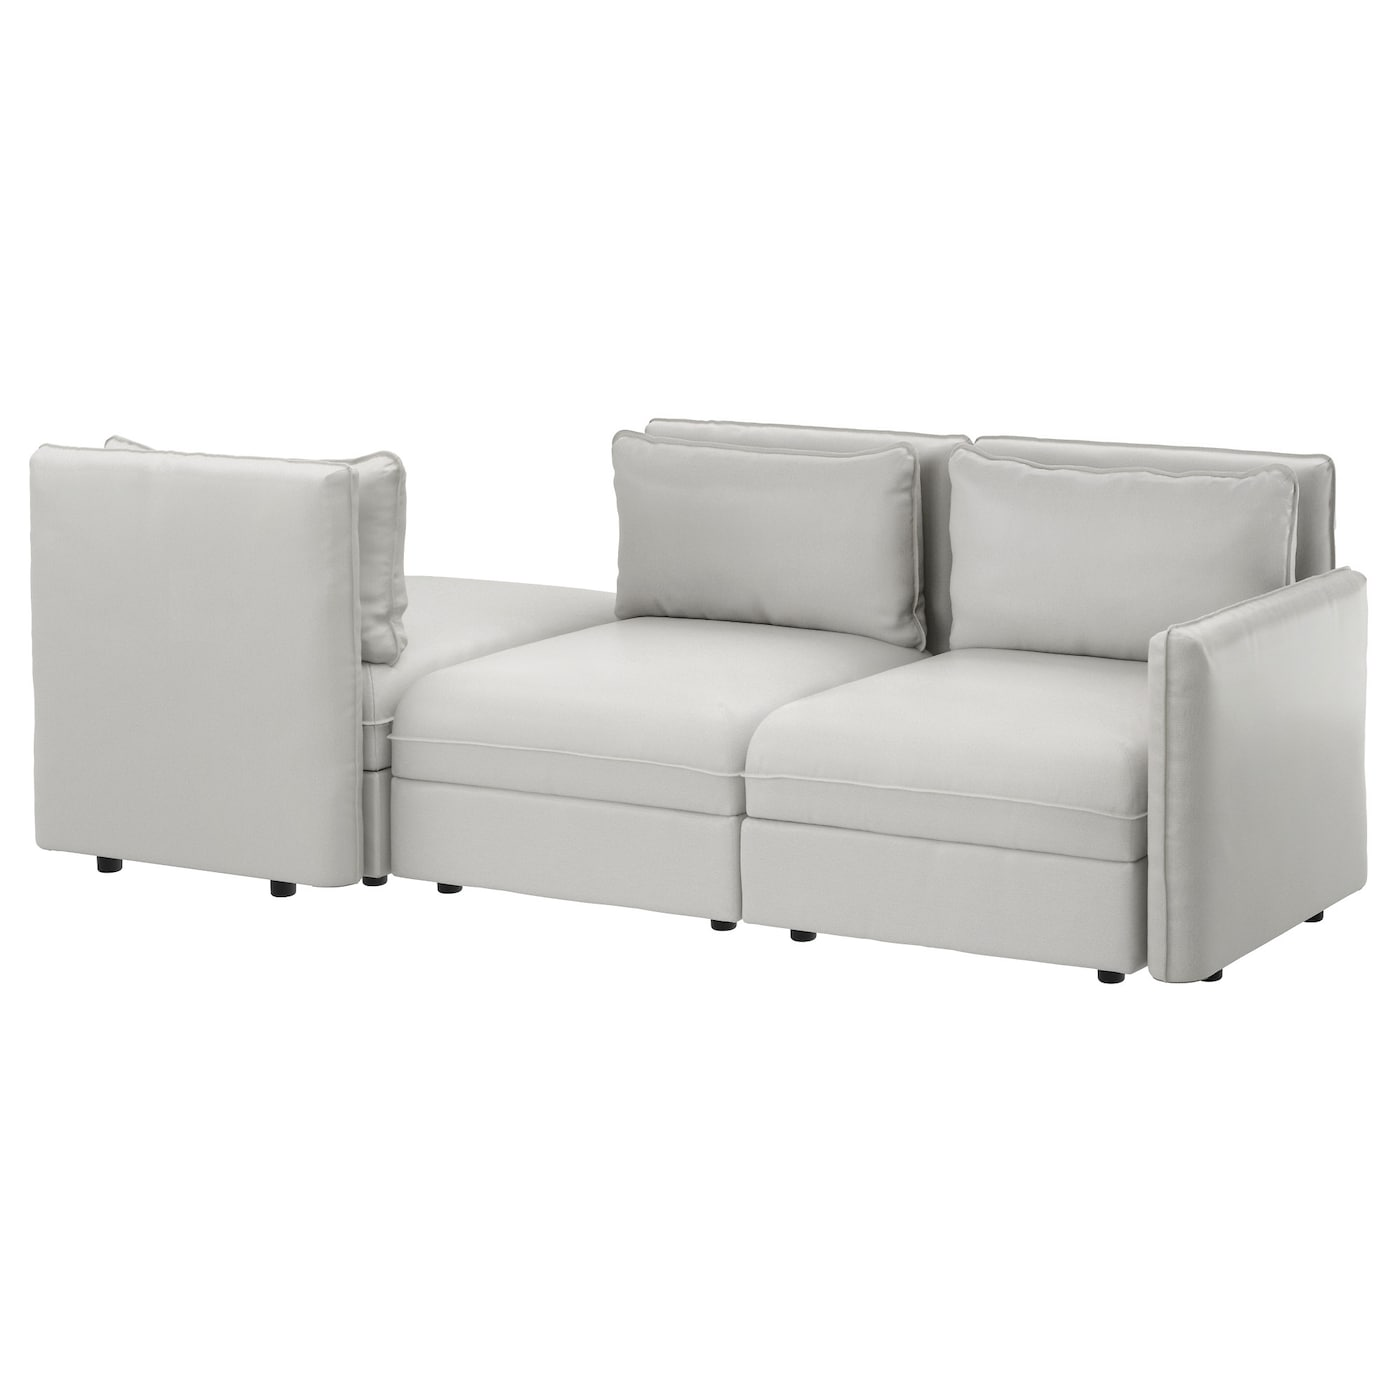 IKEA VALLENTUNA 3-seat sofa with bed